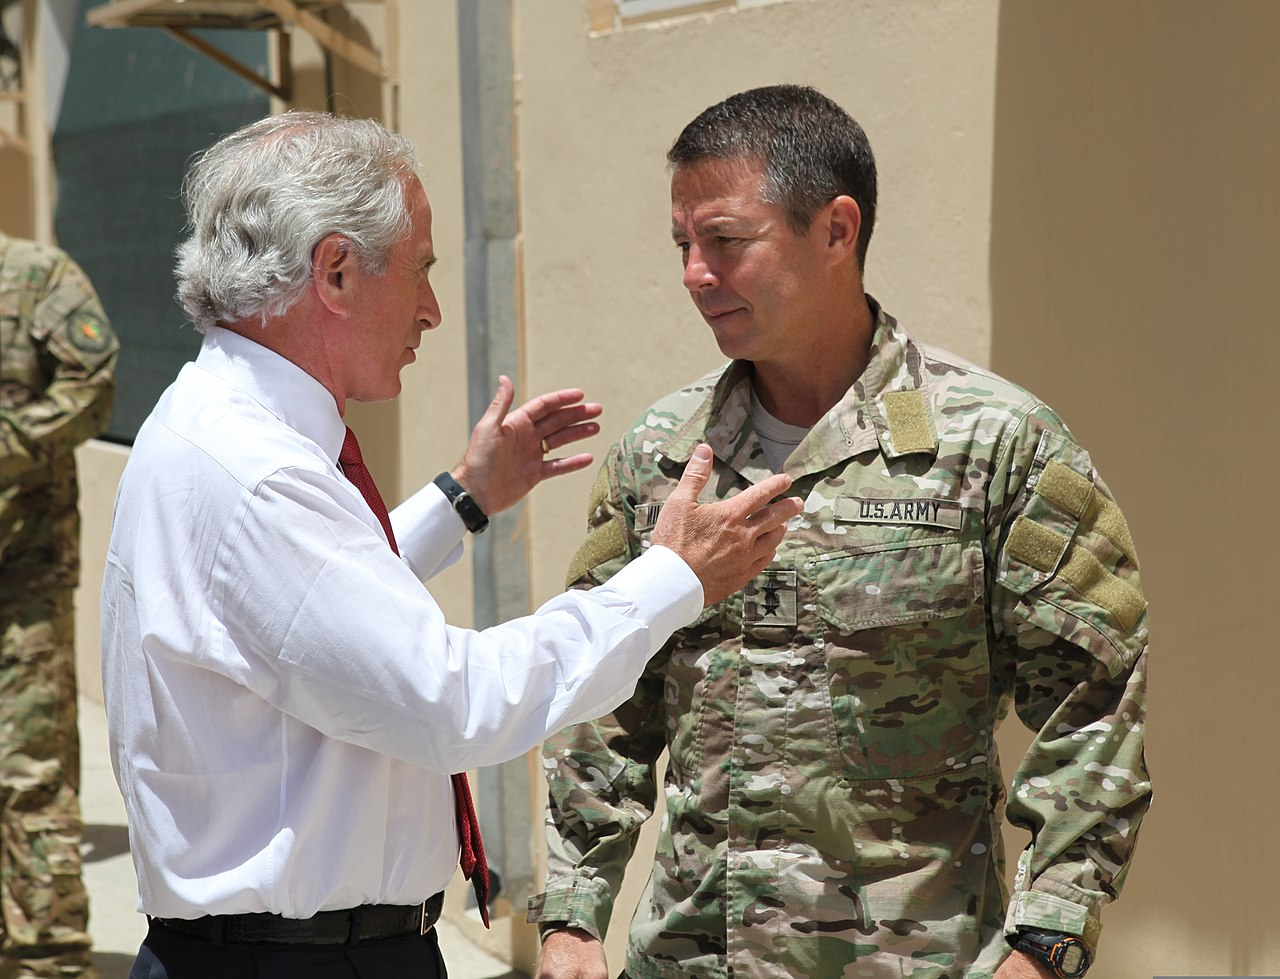 map of state tennessee with File U S  Sen  Bob Corker Of Tennessee  Left  Talks With U S  Army Maj  Gen  Scott Miller July 7  2013  Before Departing From C  Integrity  Afghanistan 130707 N Qv903 031 on Geographic Materials also File U S  Sen  Bob Corker of Tennessee  left  talks with U S  Army Maj  Gen  Scott Miller July 7  2013  before departing from C  Integrity  Afghanistan 130707 N QV903 031 further Summertown  Oxford moreover File Map of Tennessee highlighting Marshall County besides Nashvillehistory attractions.